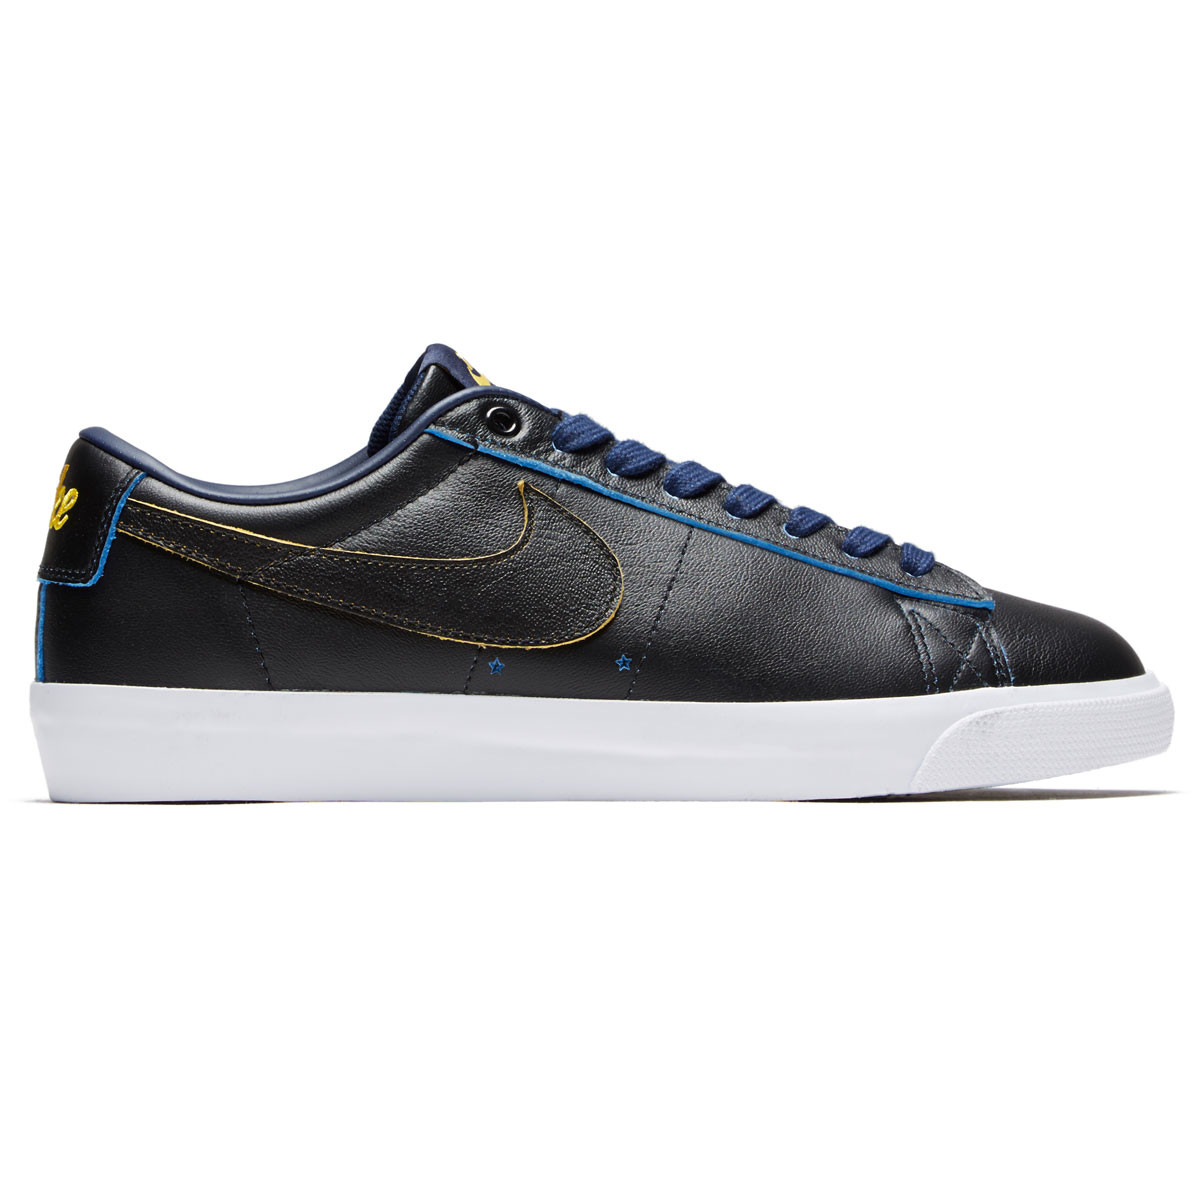 098e6490f75631 Nike SB x NBA Blazer Low GT Shoes - Black Black Amarillo Coast